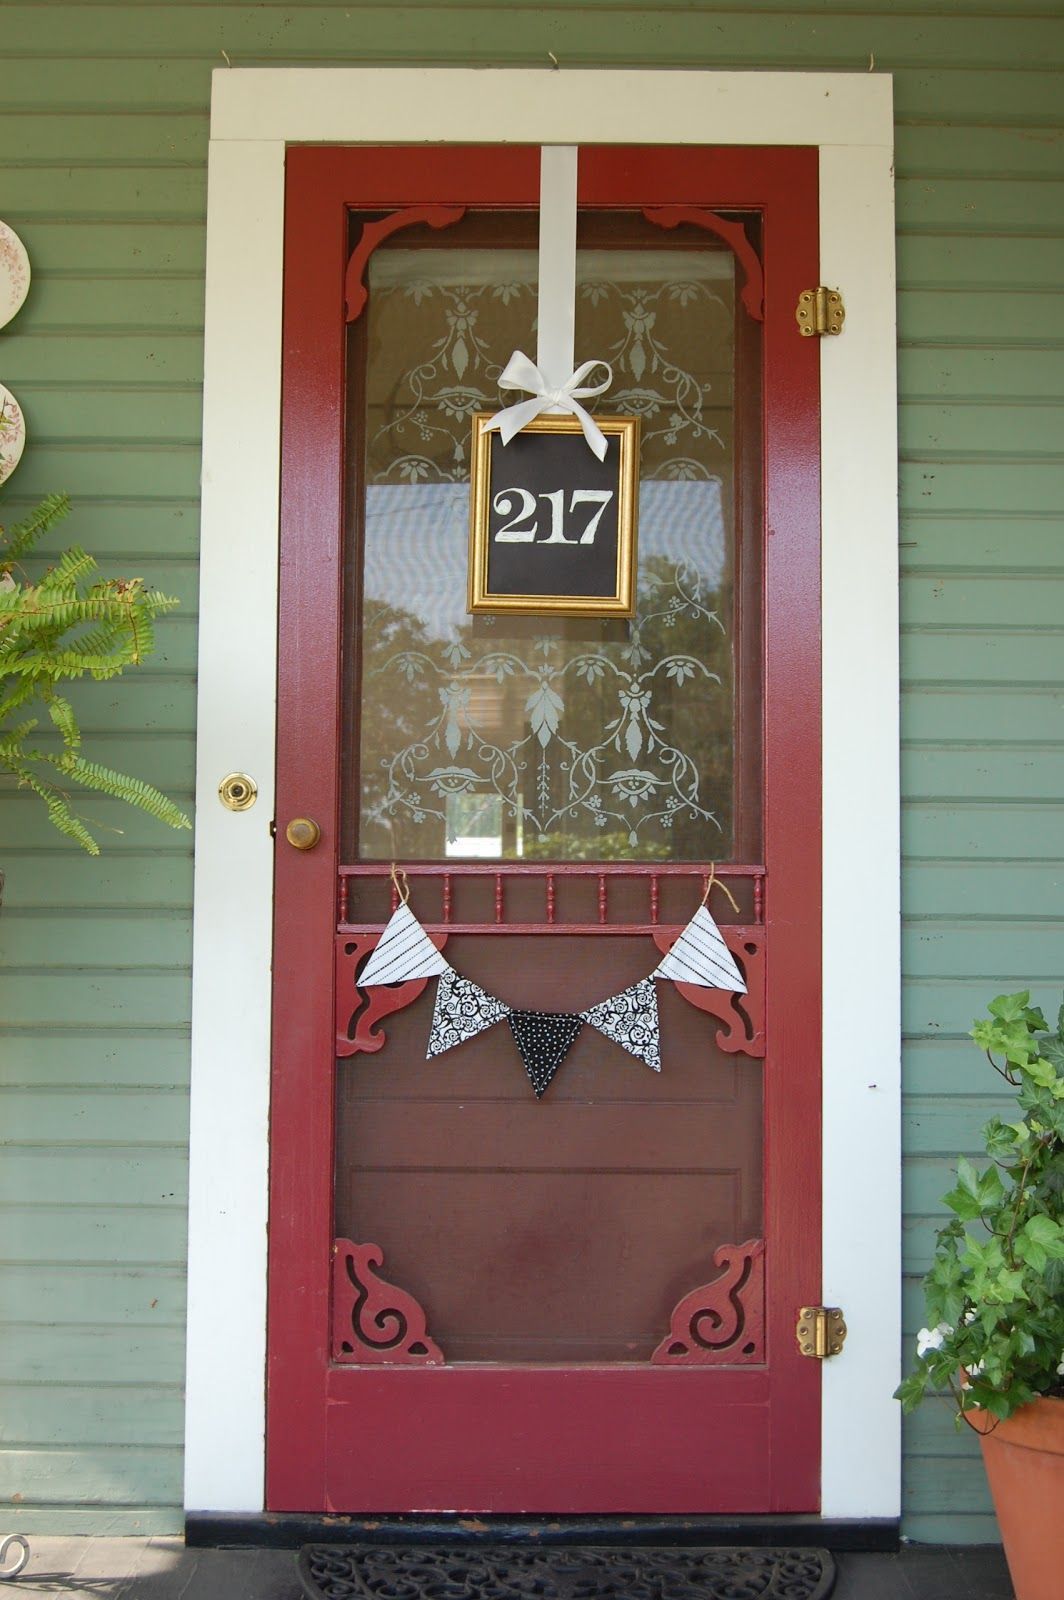 Decorating apartment door numbers pictures : Creative Ways To Craft And Display Your DIY House Number Signs